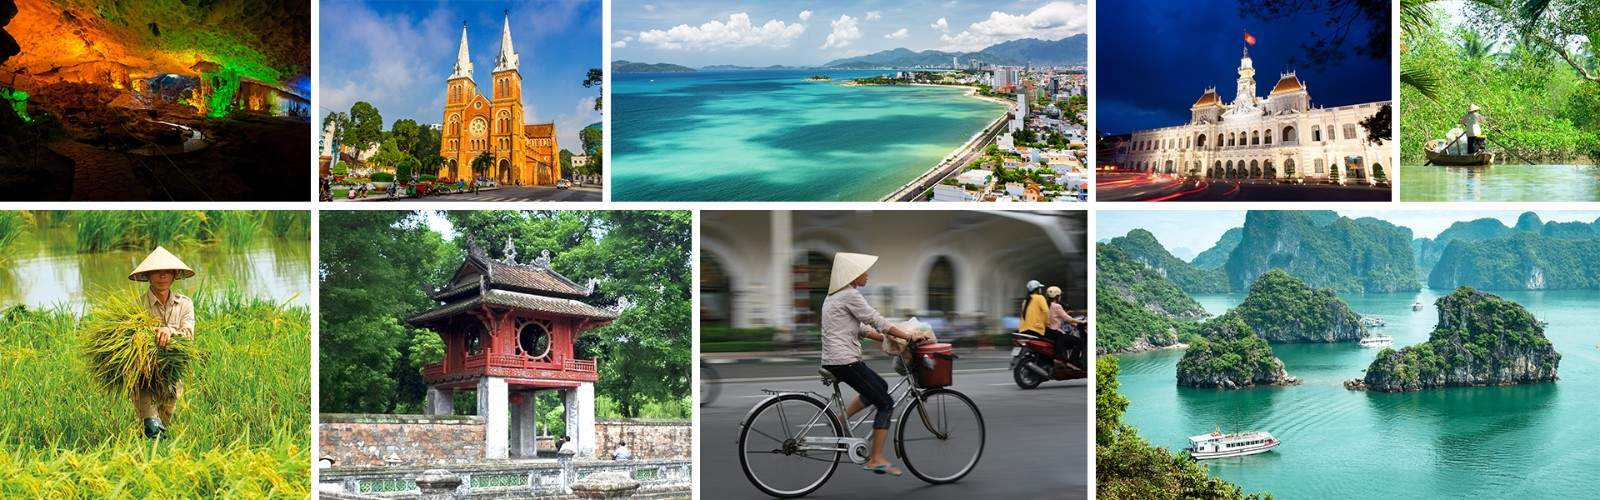 Wendy Wu Tours Vietnam Holidays